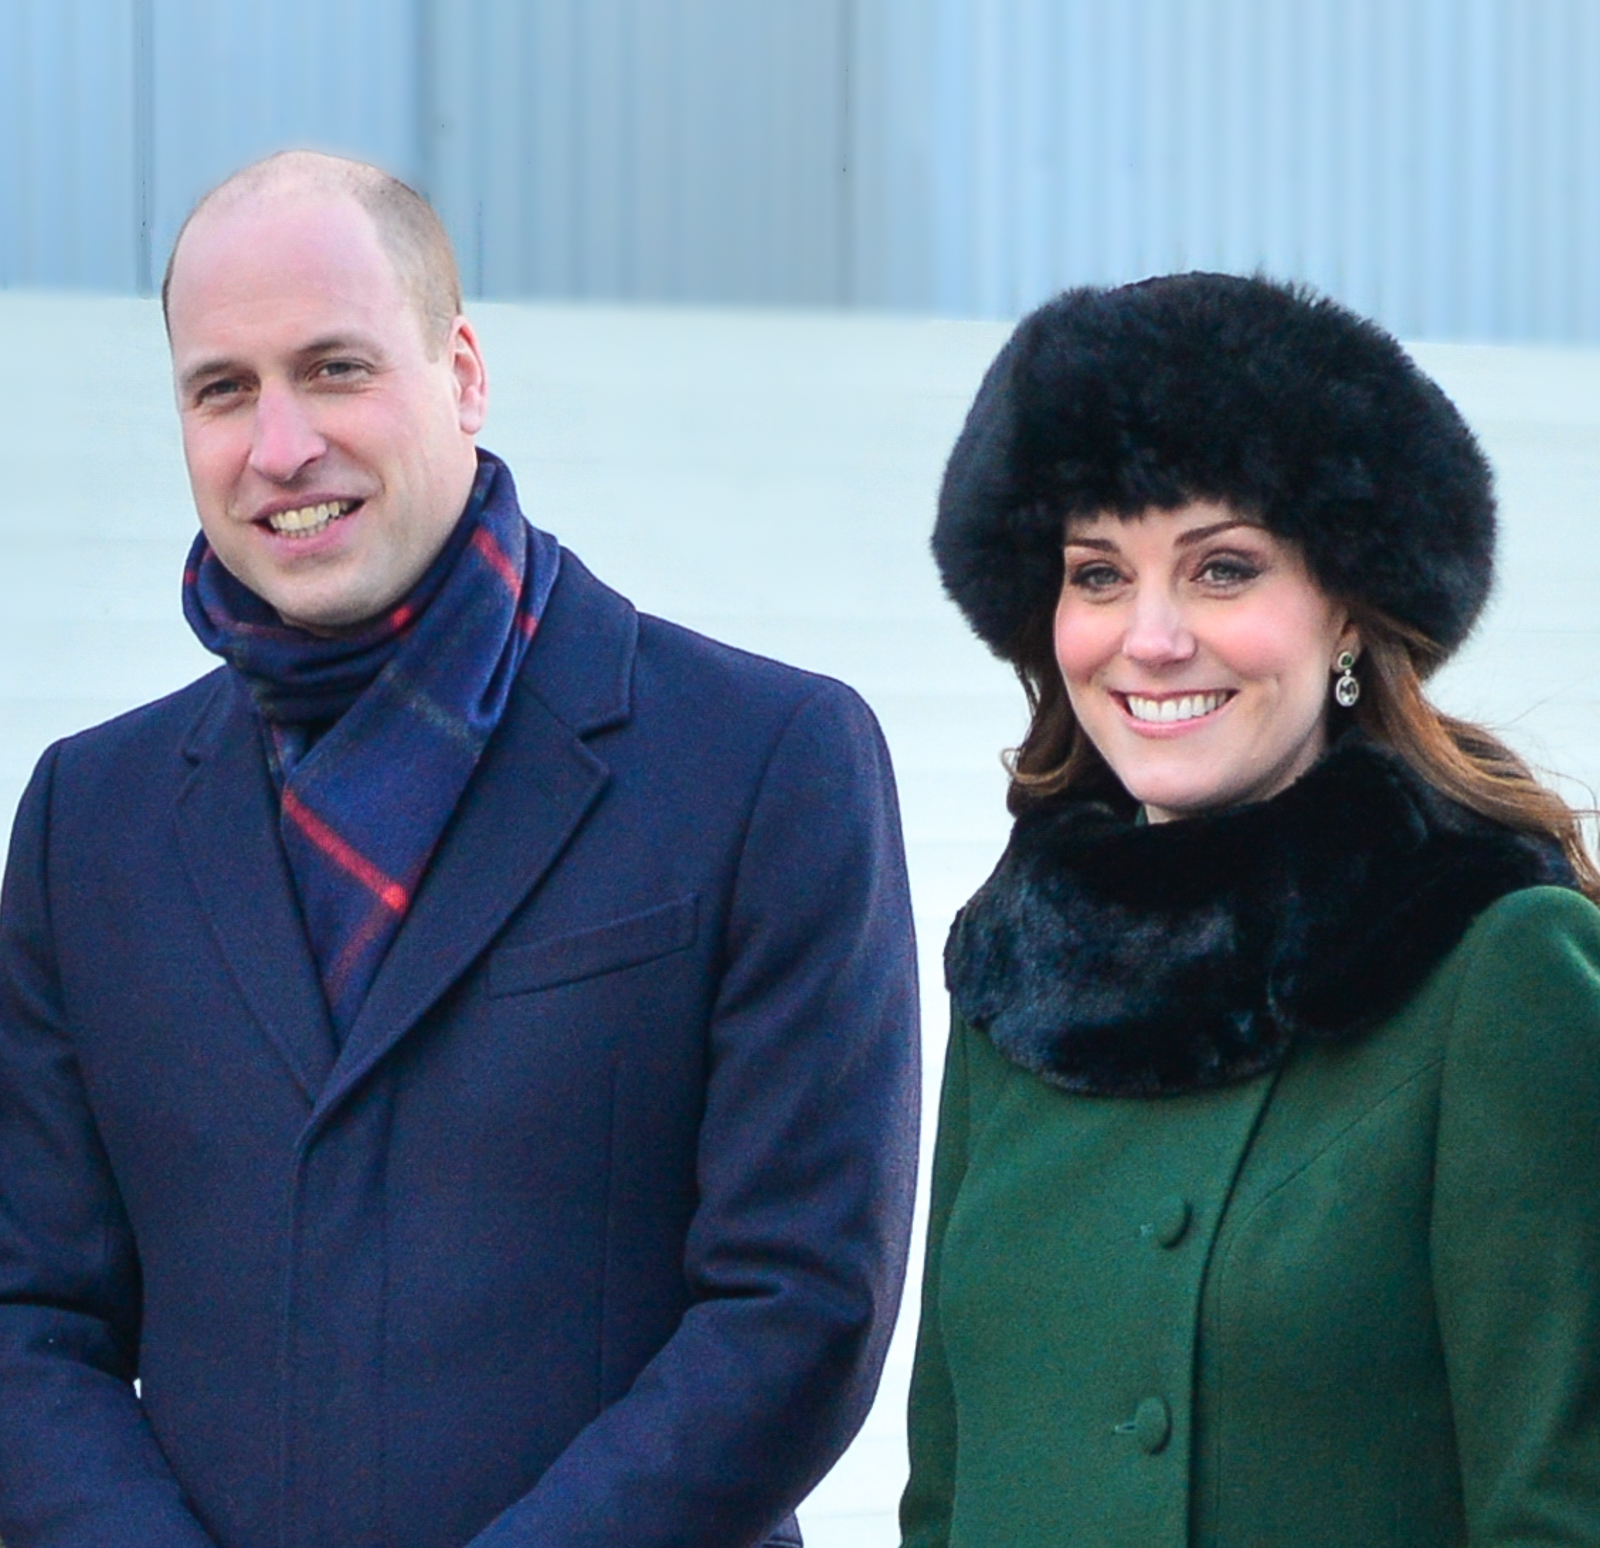 Prince_William_and_Duchess_Kate_of_Cambridge_visits_Sweden_02.jpg